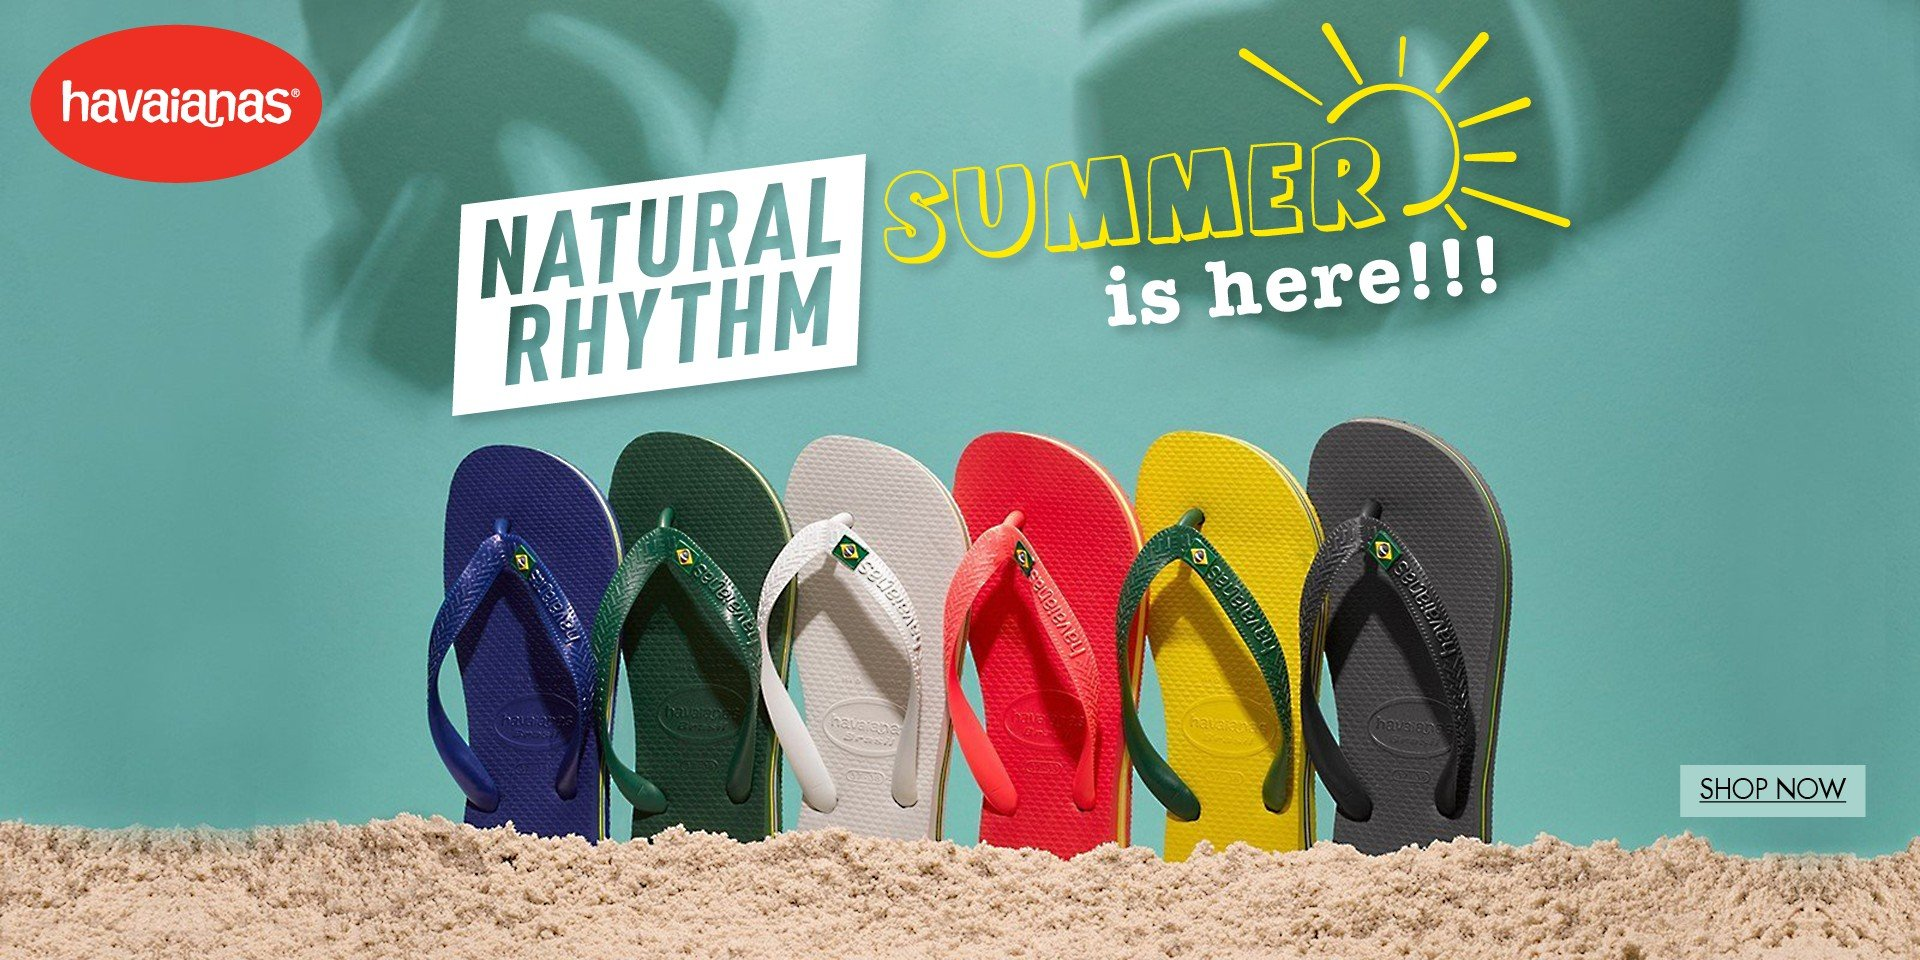 havaianas - Summer is here!!